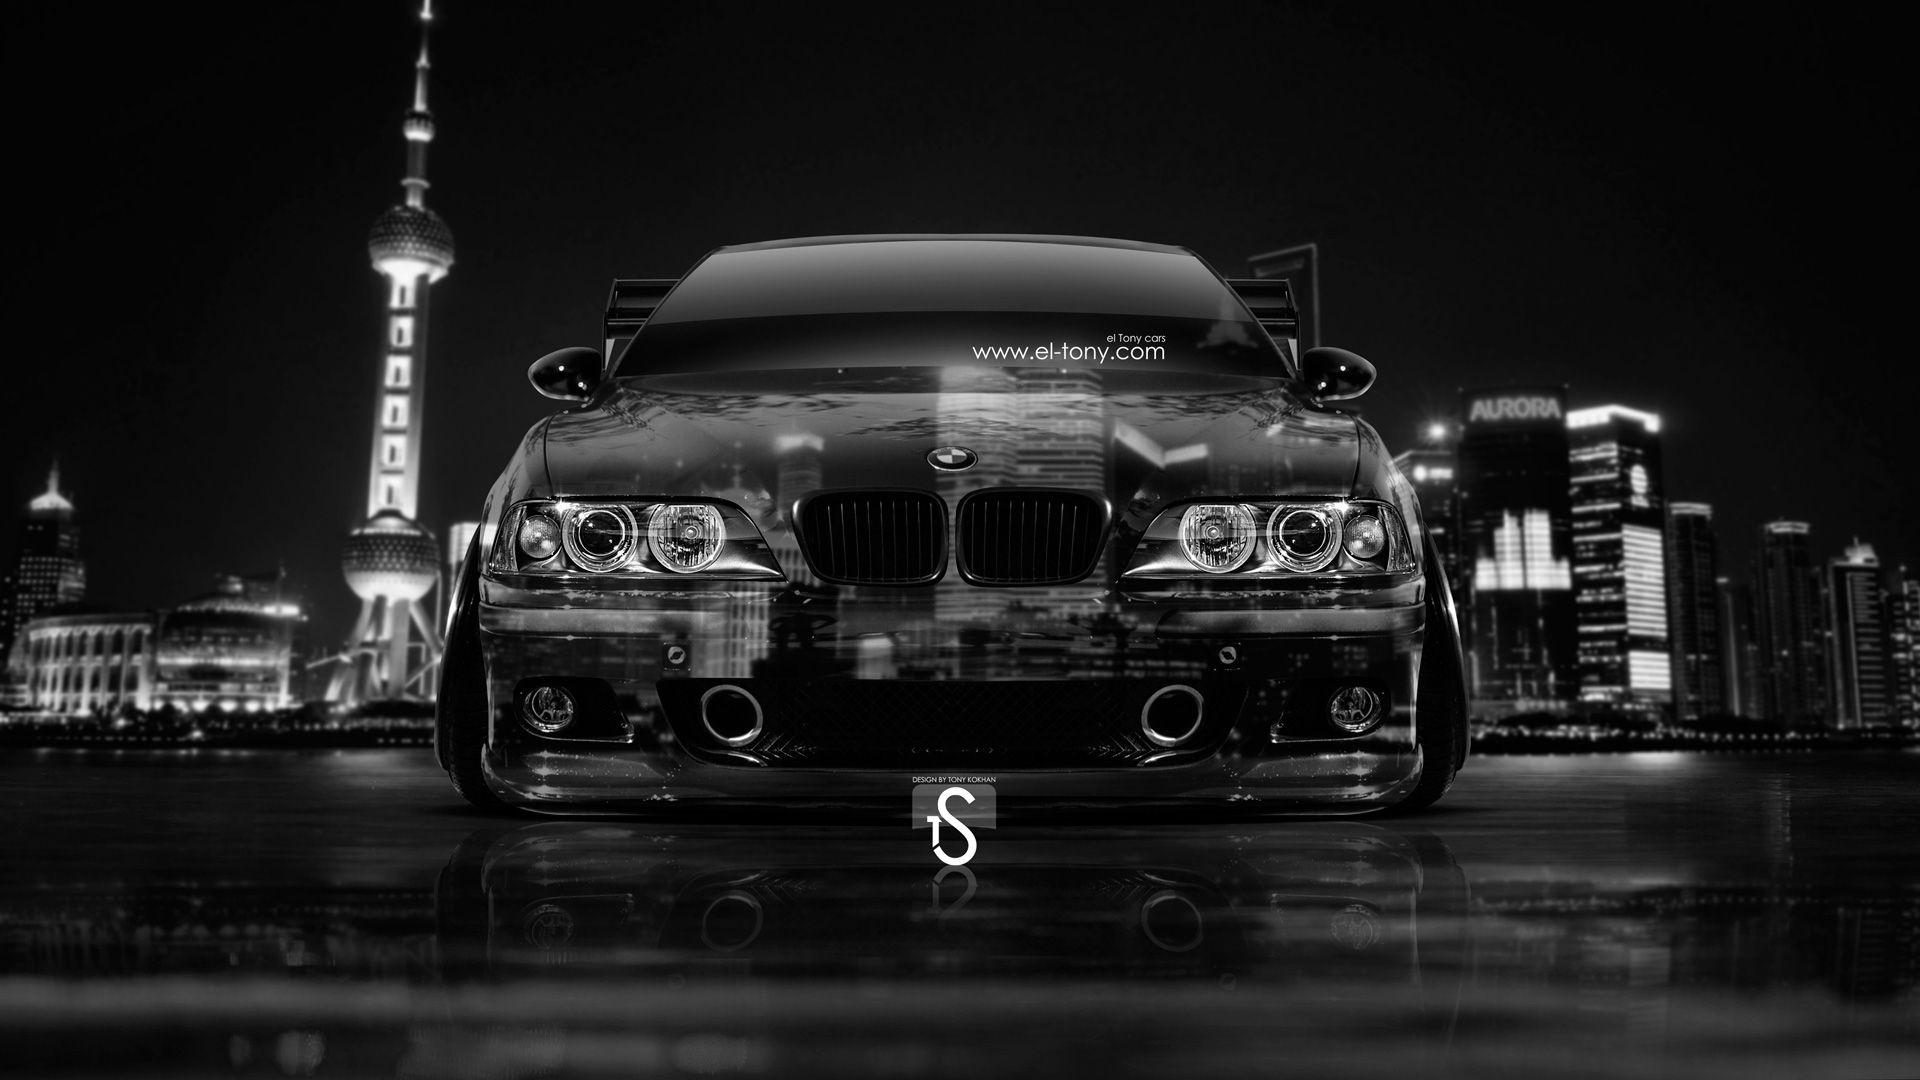 BMW M5 E39 Tuning Front Crystal City Car 2014